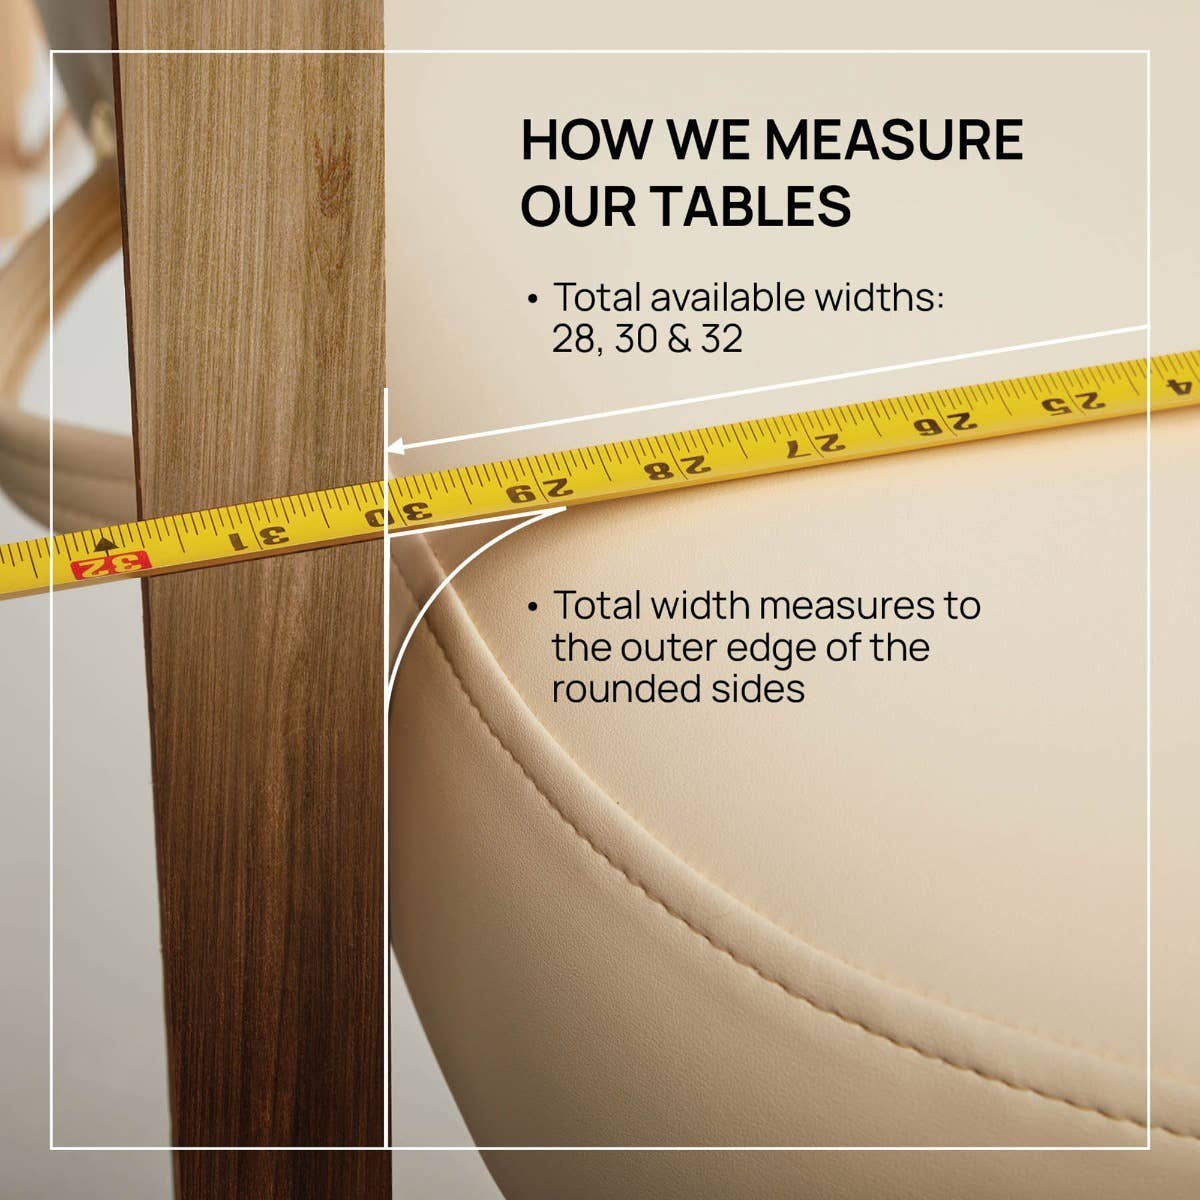 how_we_measure_our_tables_v4_003__13